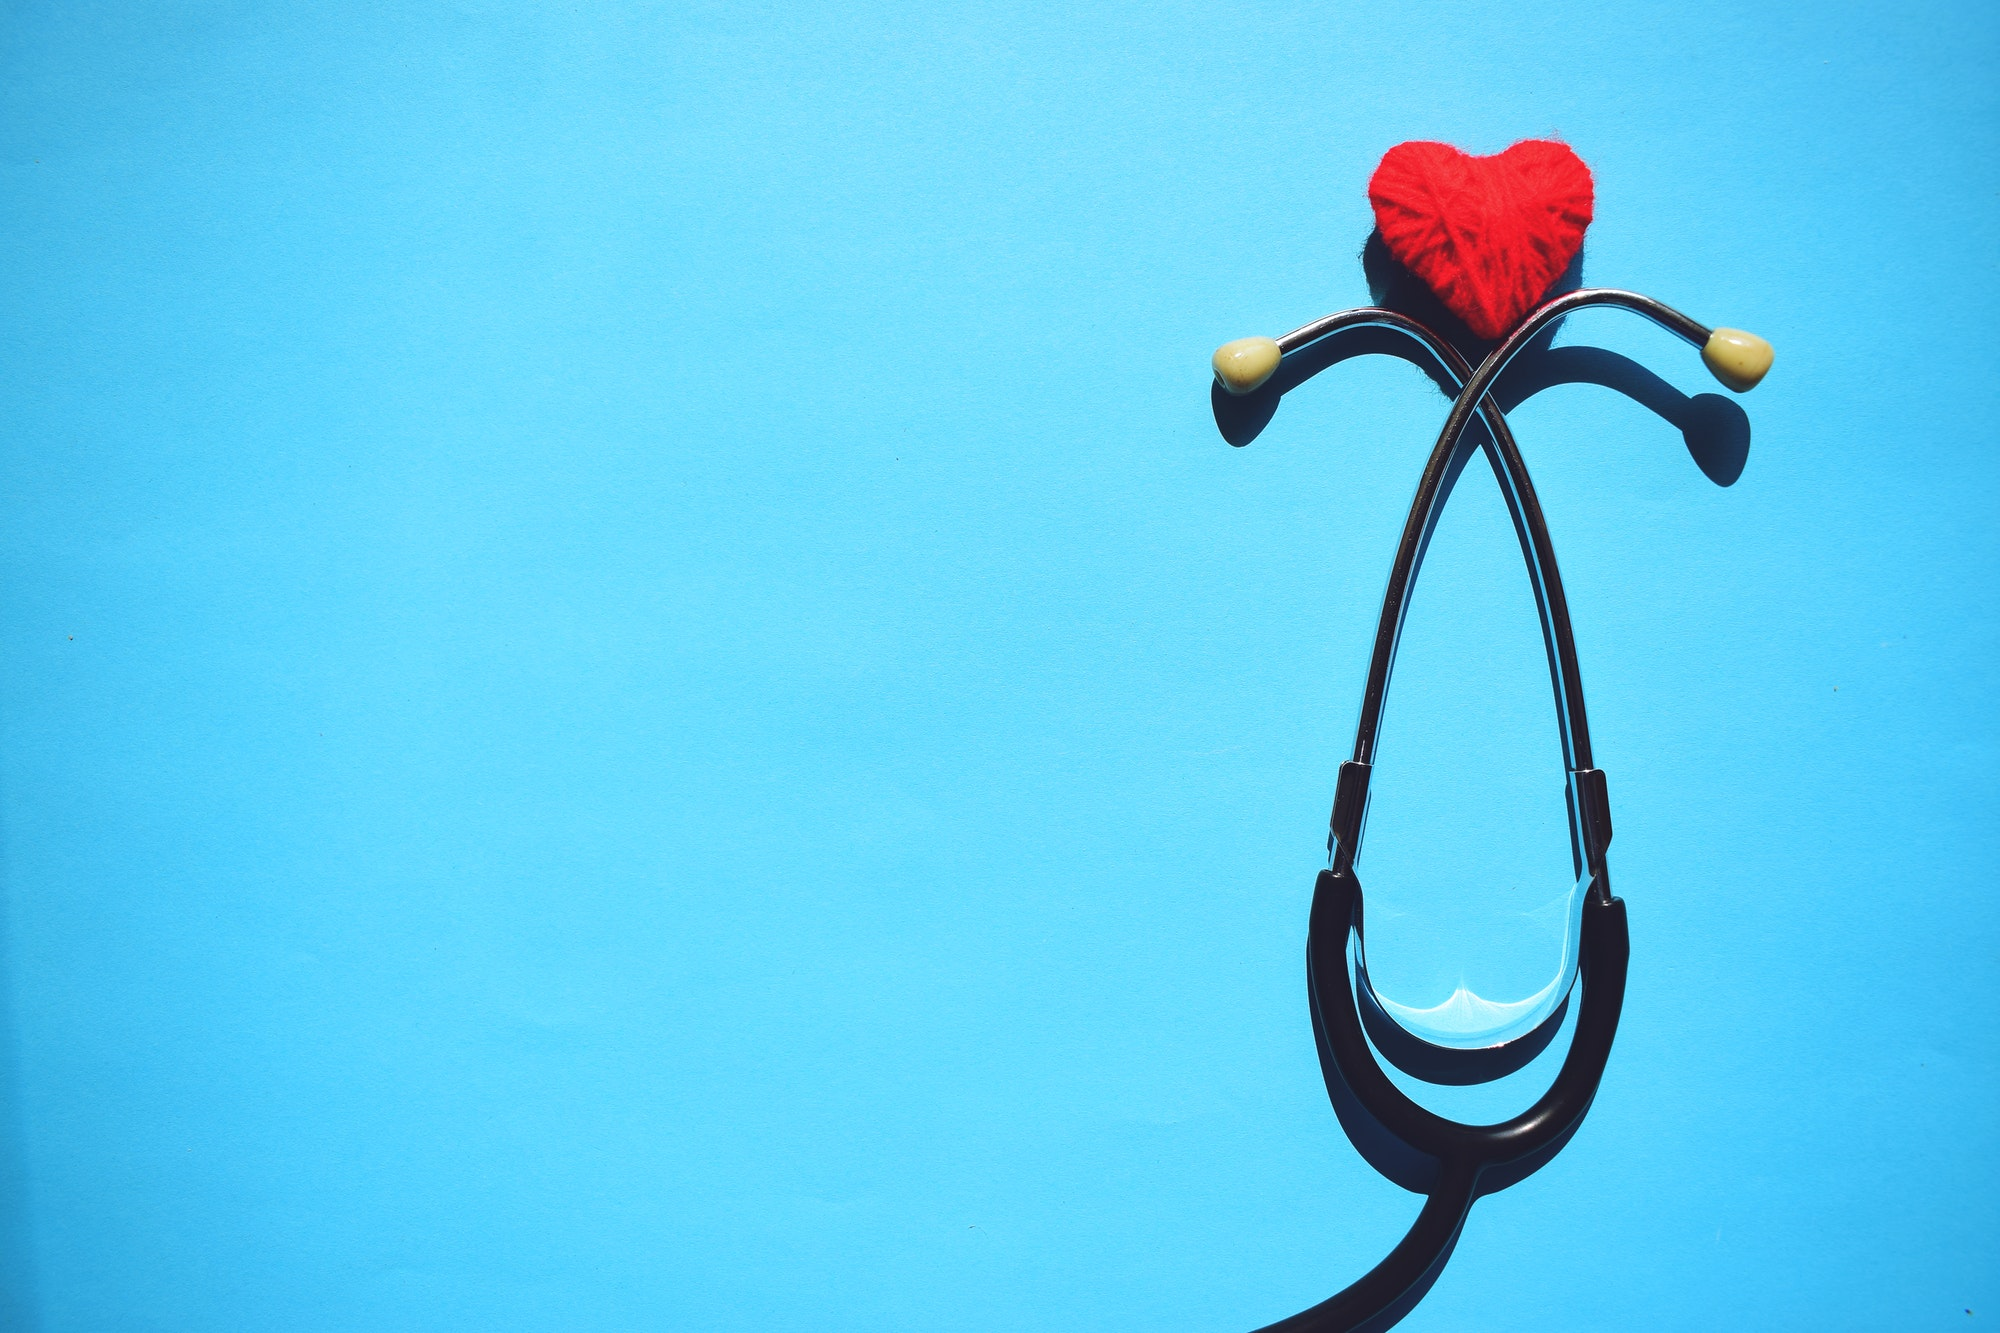 medical stethoscope head and red heart - ASSIN Brasil